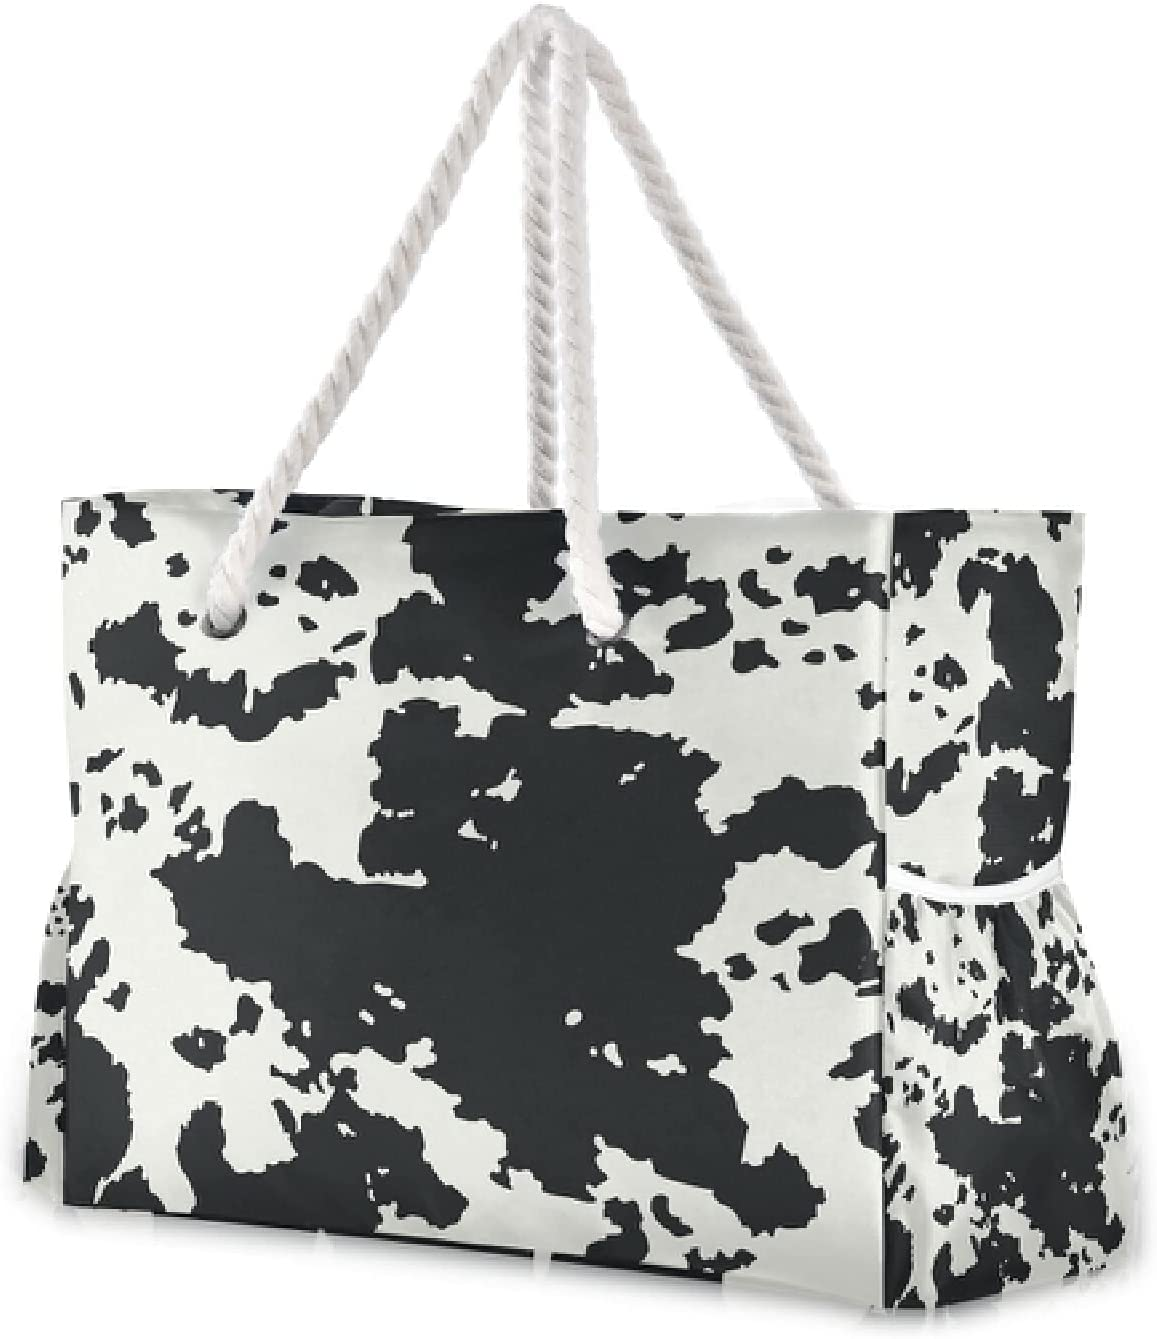 Year-end annual account OTVEE Cow Skin Animal Prints Beach Large Travel Tote Bag 70% OFF Outlet Zip